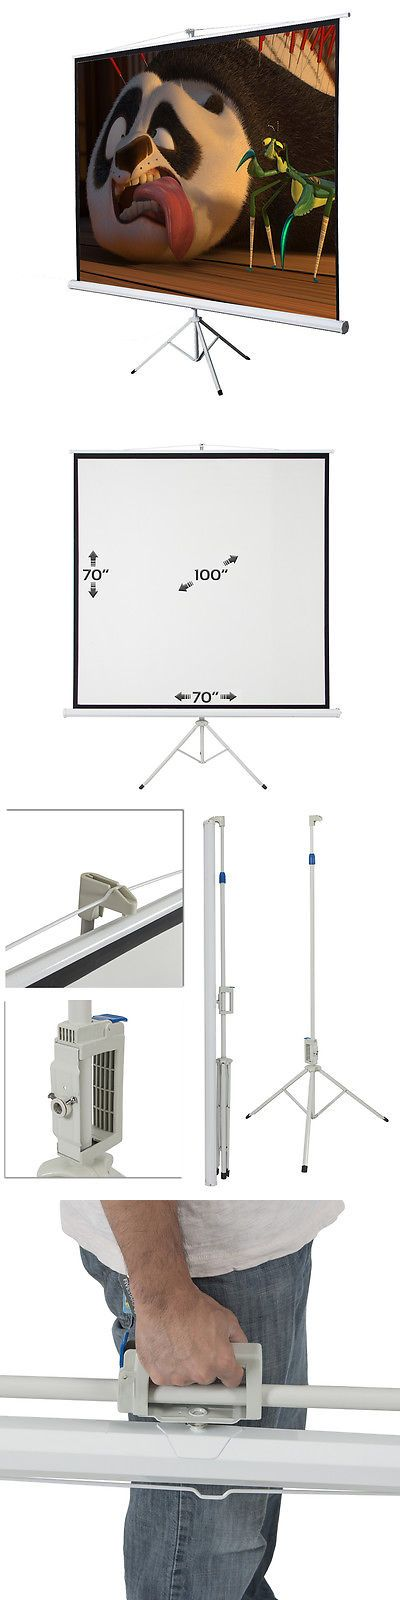 buy projection screen There are a lot of portable movie screens on the market, but you are looking for a   visual apex prides itself on making high-quality movie theater projection.